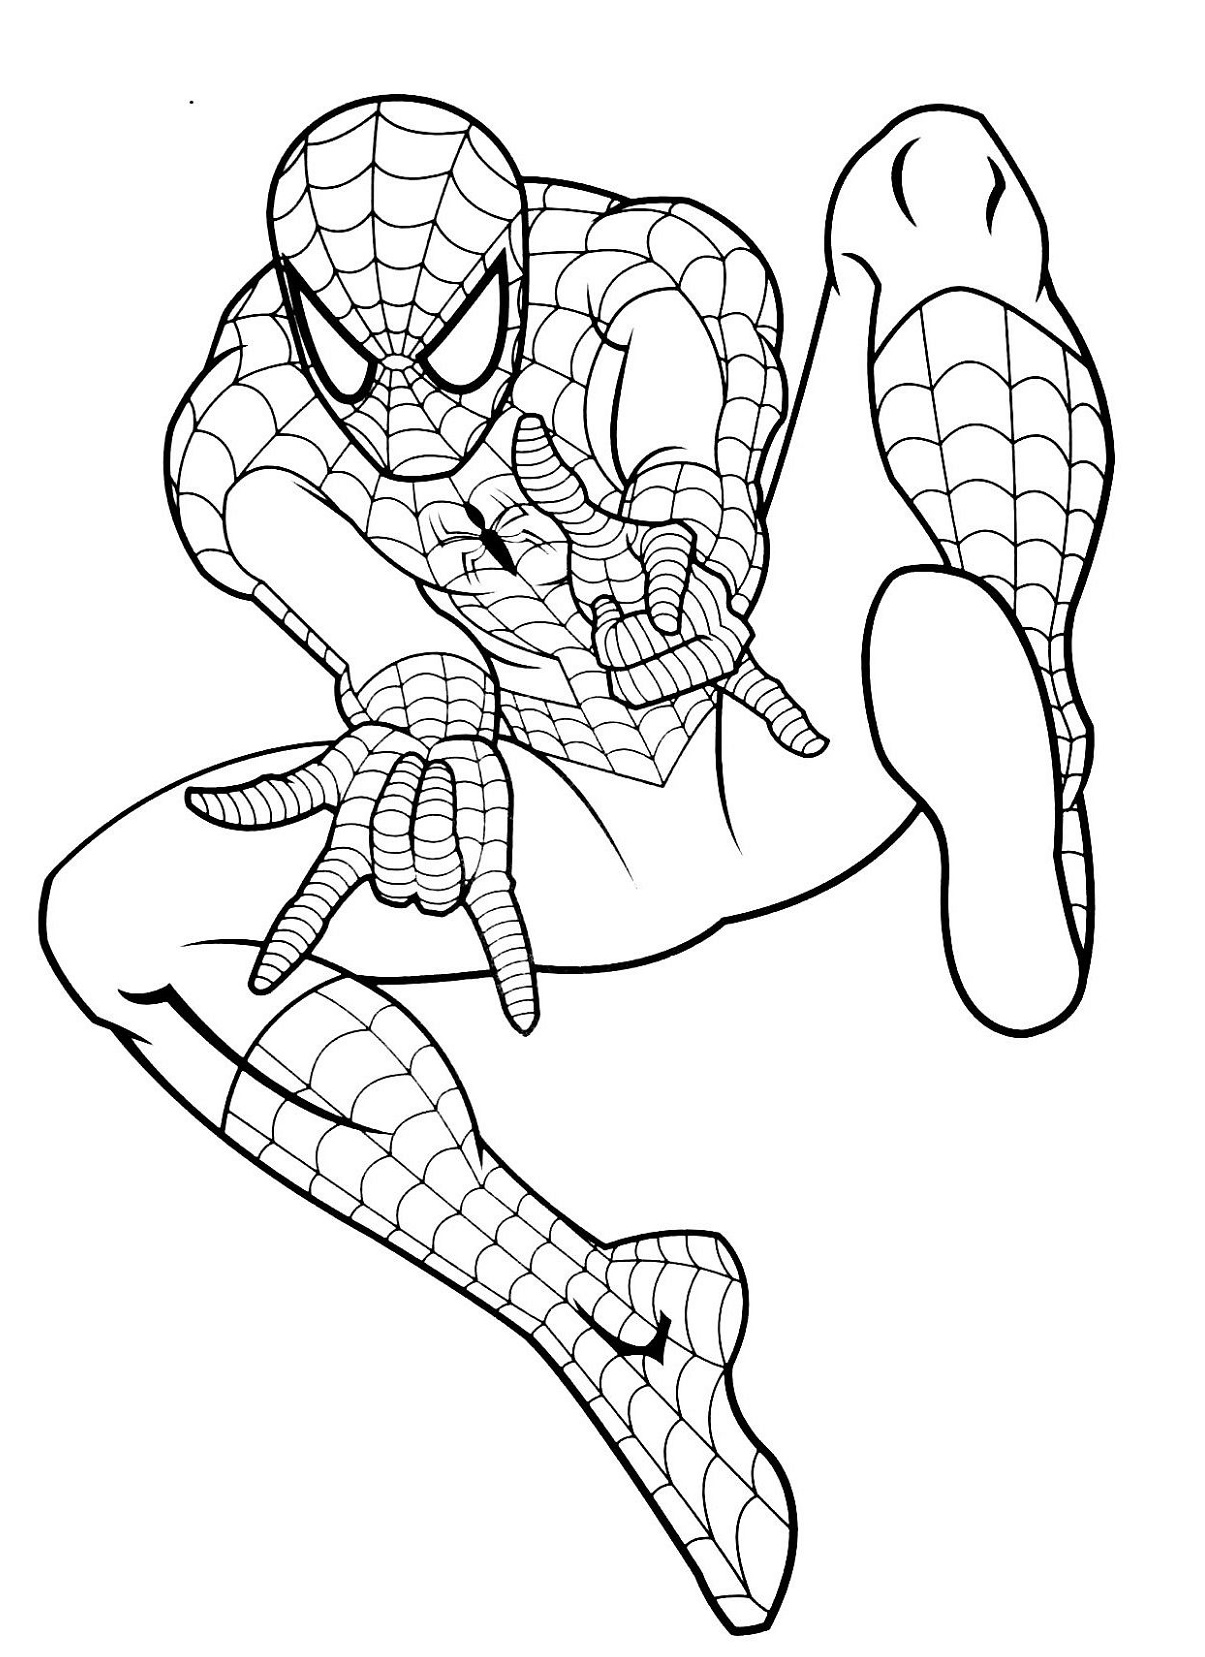 coloring pictures of spiderman spiderman free to color for kids spiderman kids coloring coloring spiderman pictures of